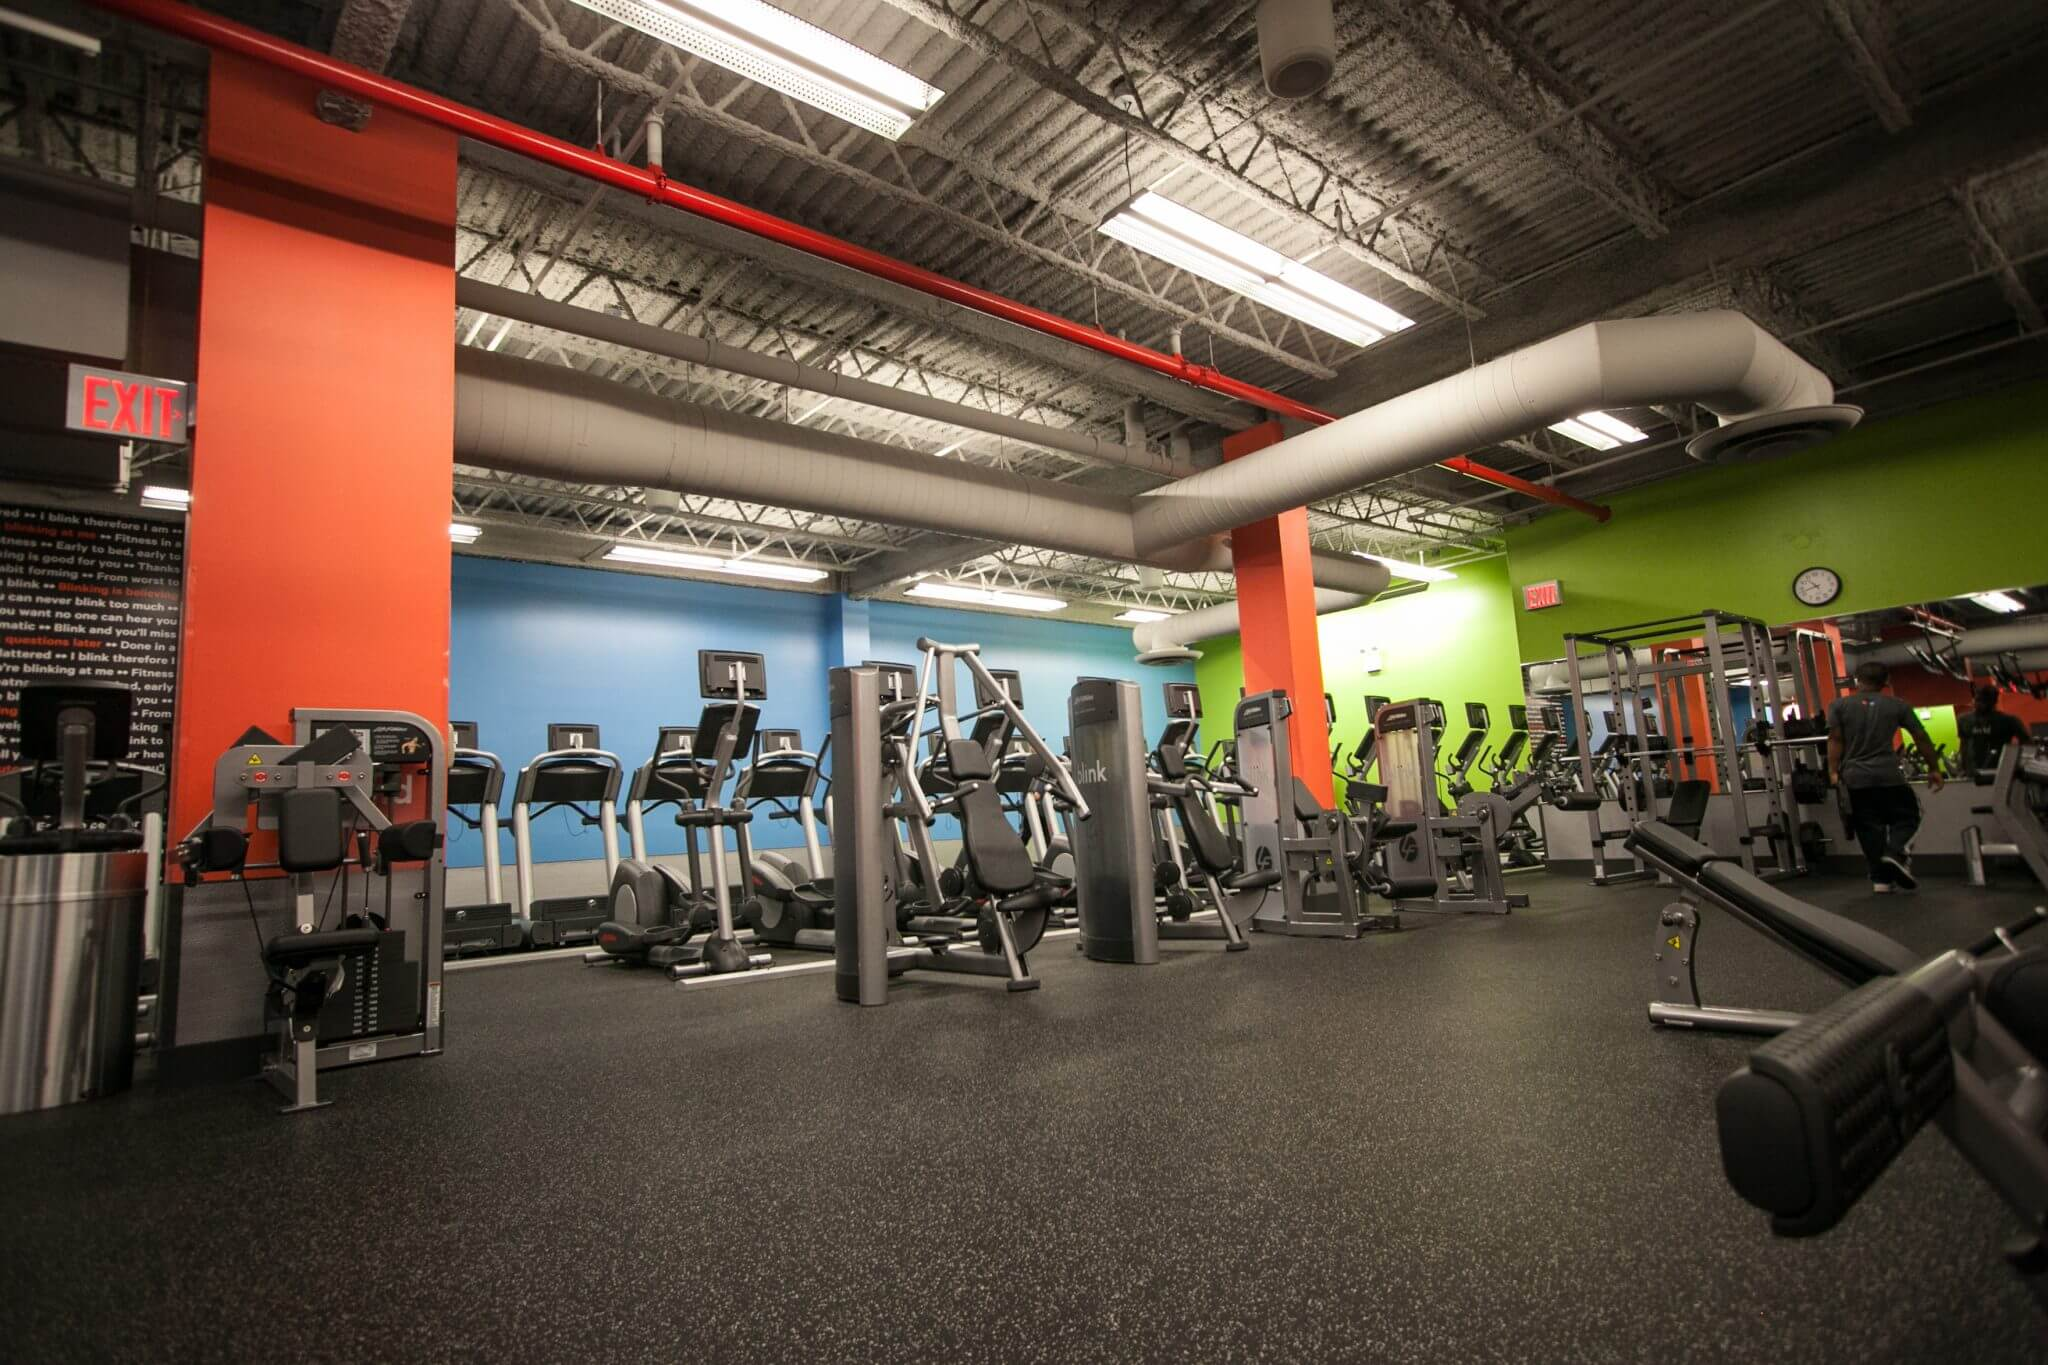 the newest blink fitness is in an old brooklyn bathhouse